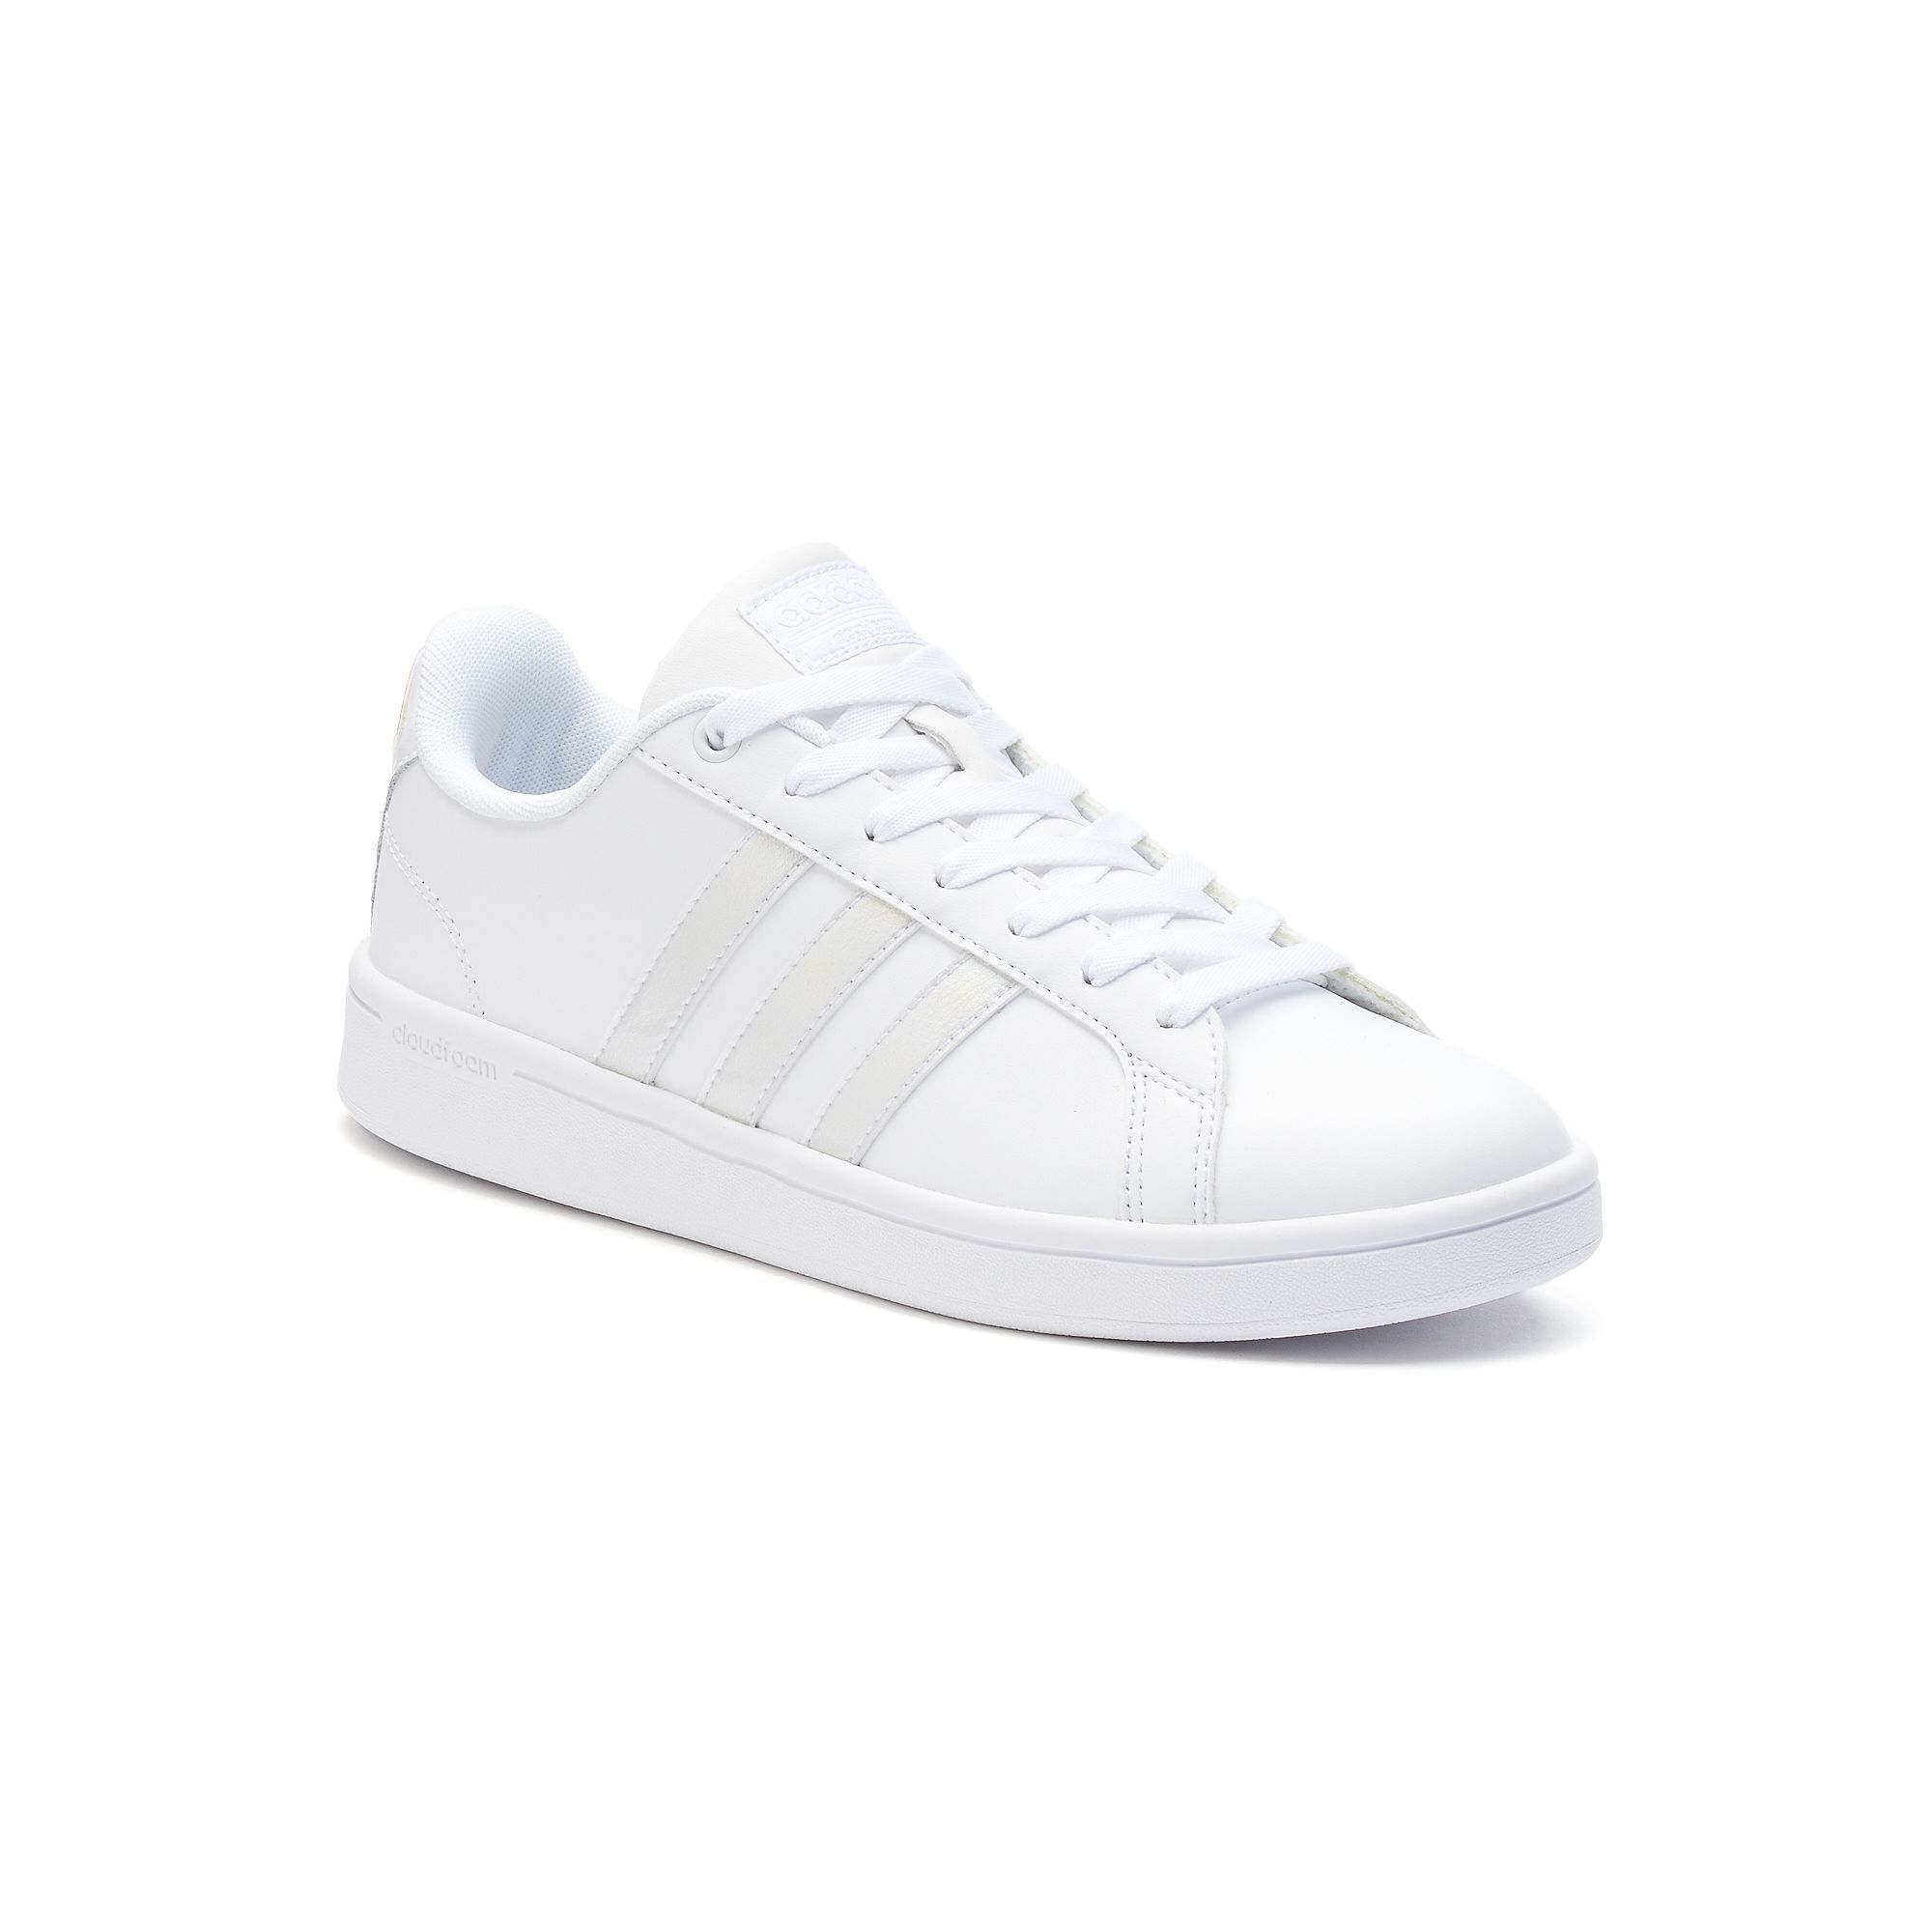 Adidas NEO Cloudfoam Advantage Stripe Women's Shoes, Size ...